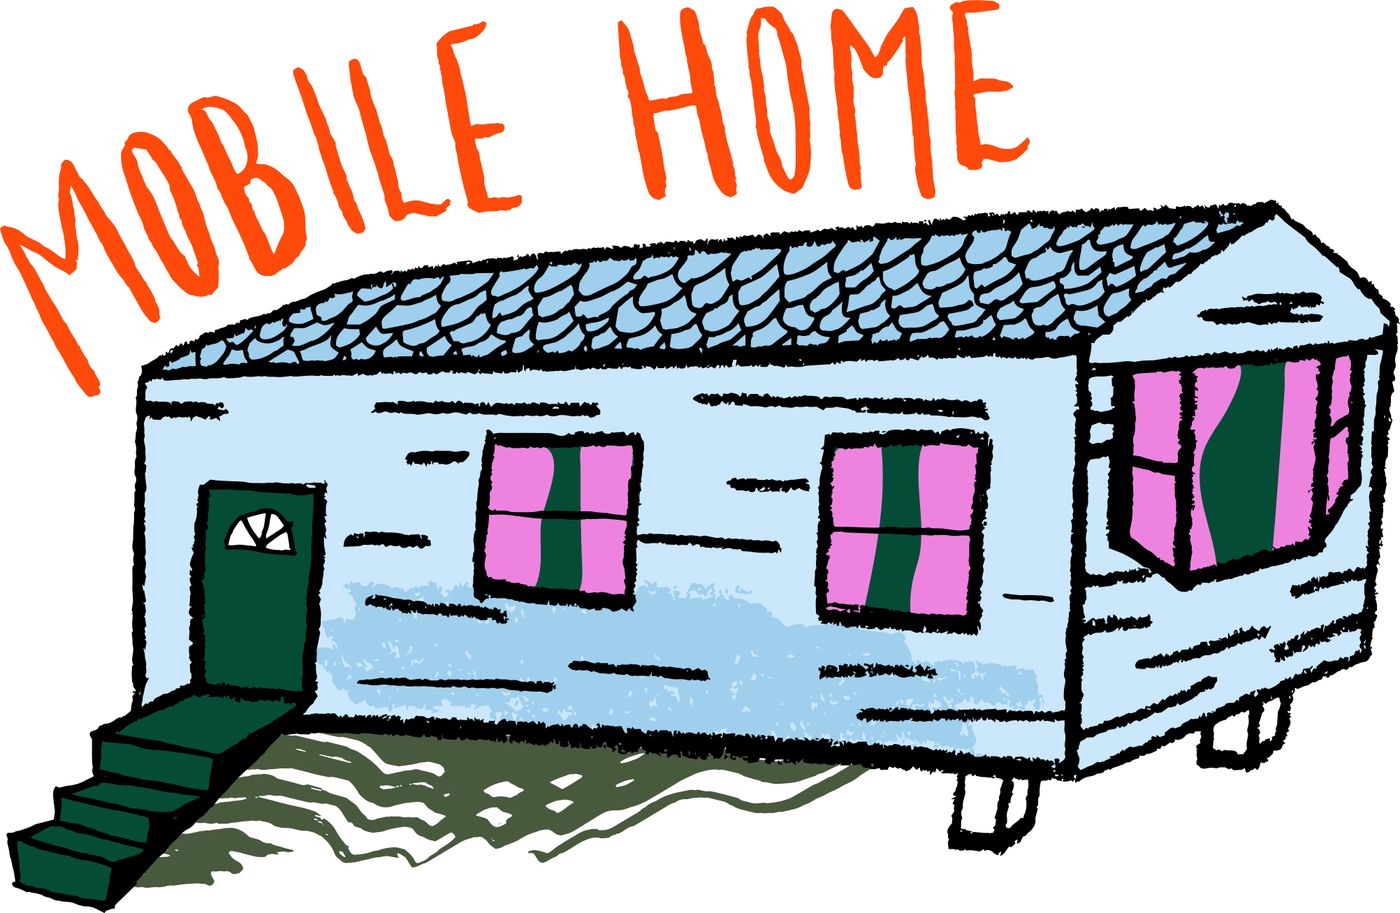 Mobile homes 101: Who's living in them and how they're made ... on mobile home material, mobile home construction, mobile home blueprint, mobile home size, mobile home underside, mobile home specifications, mobile home barn, mobile home design, mobile home elevation, mobile home range, mobile home cement, mobile home top view, mobile home data, mobile home color, mobile home type, mobile home base, mobile home plan, mobile home composition, mobile home width,